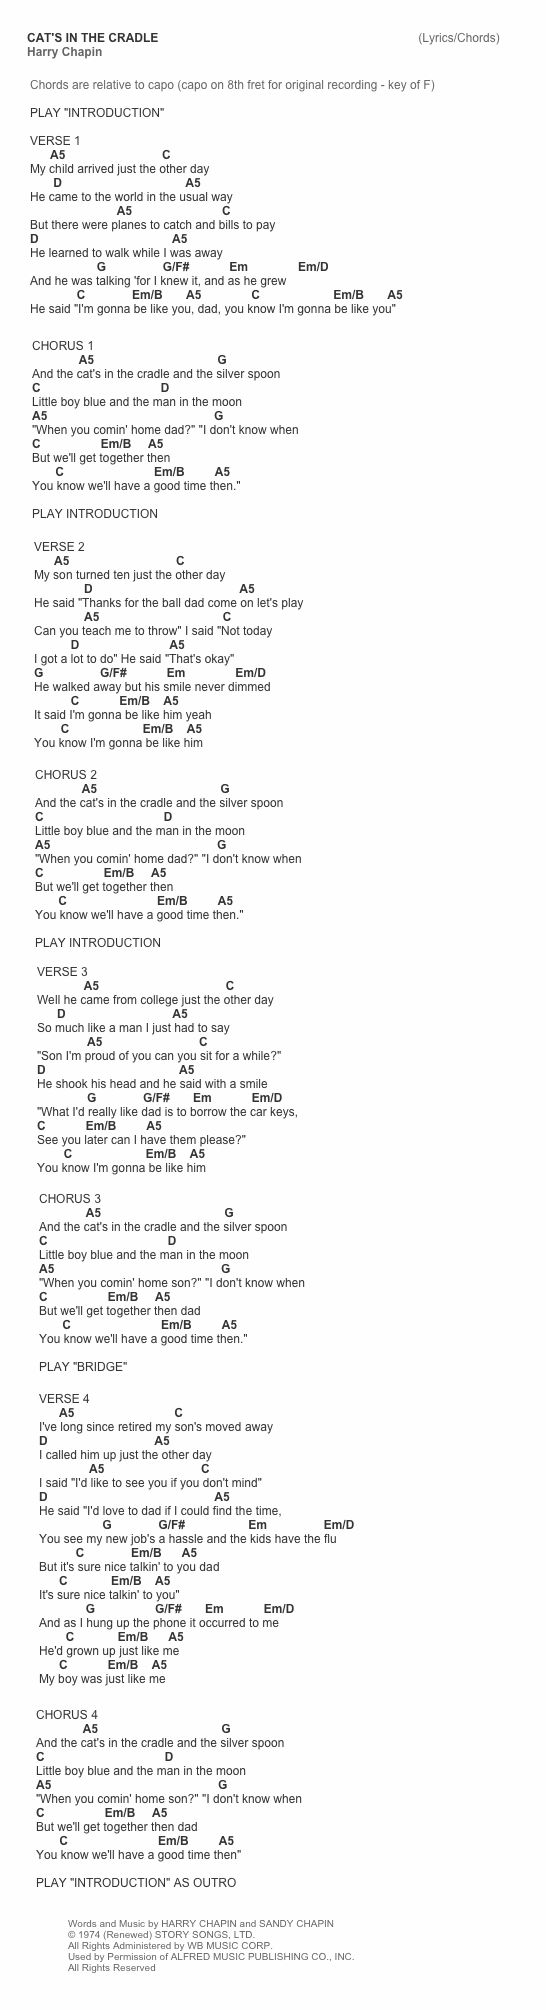 Cat's In The Cradle by Harry Chapin chords and tab cheat